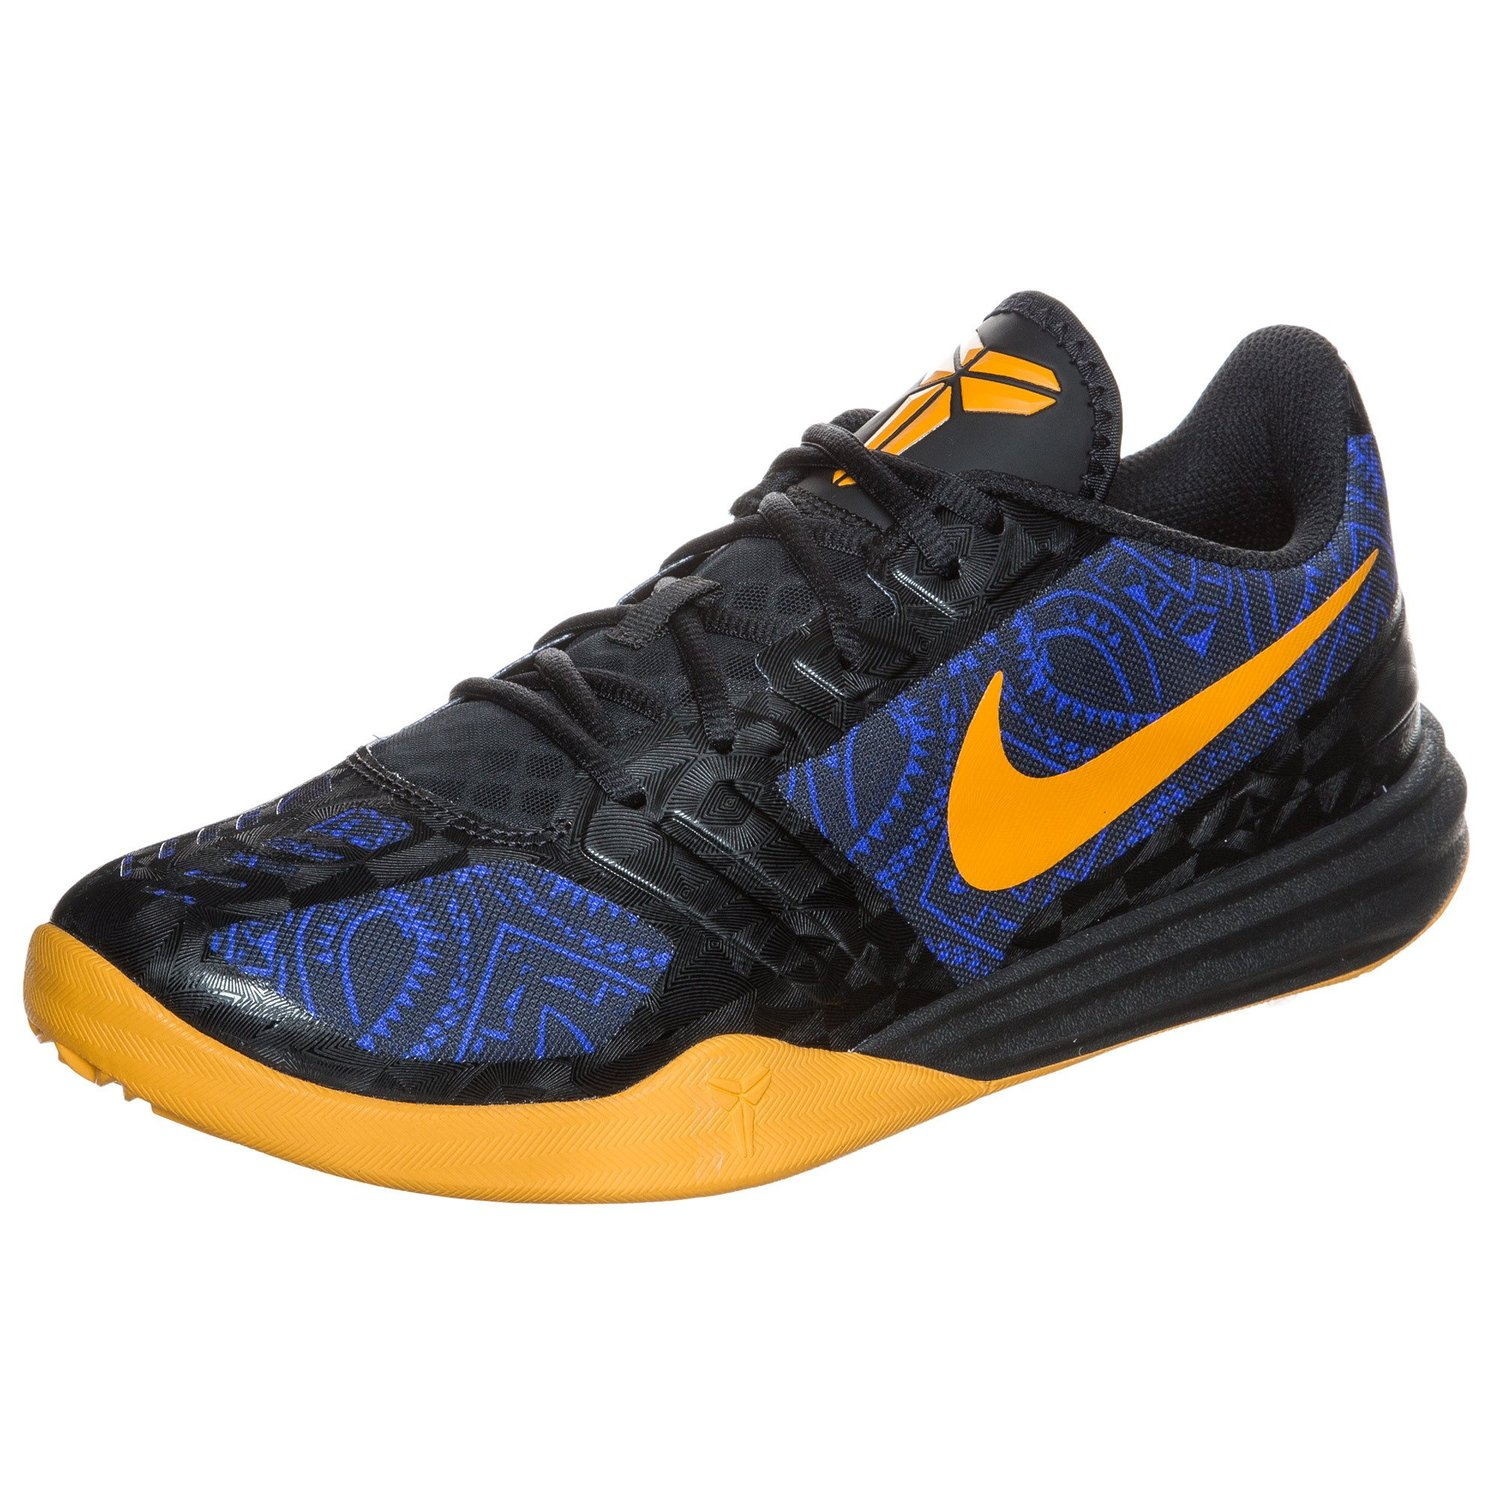 huge discount 5c924 41b0d Get Quotations · Nike Mens Kobe Mentality Basketball Shoes